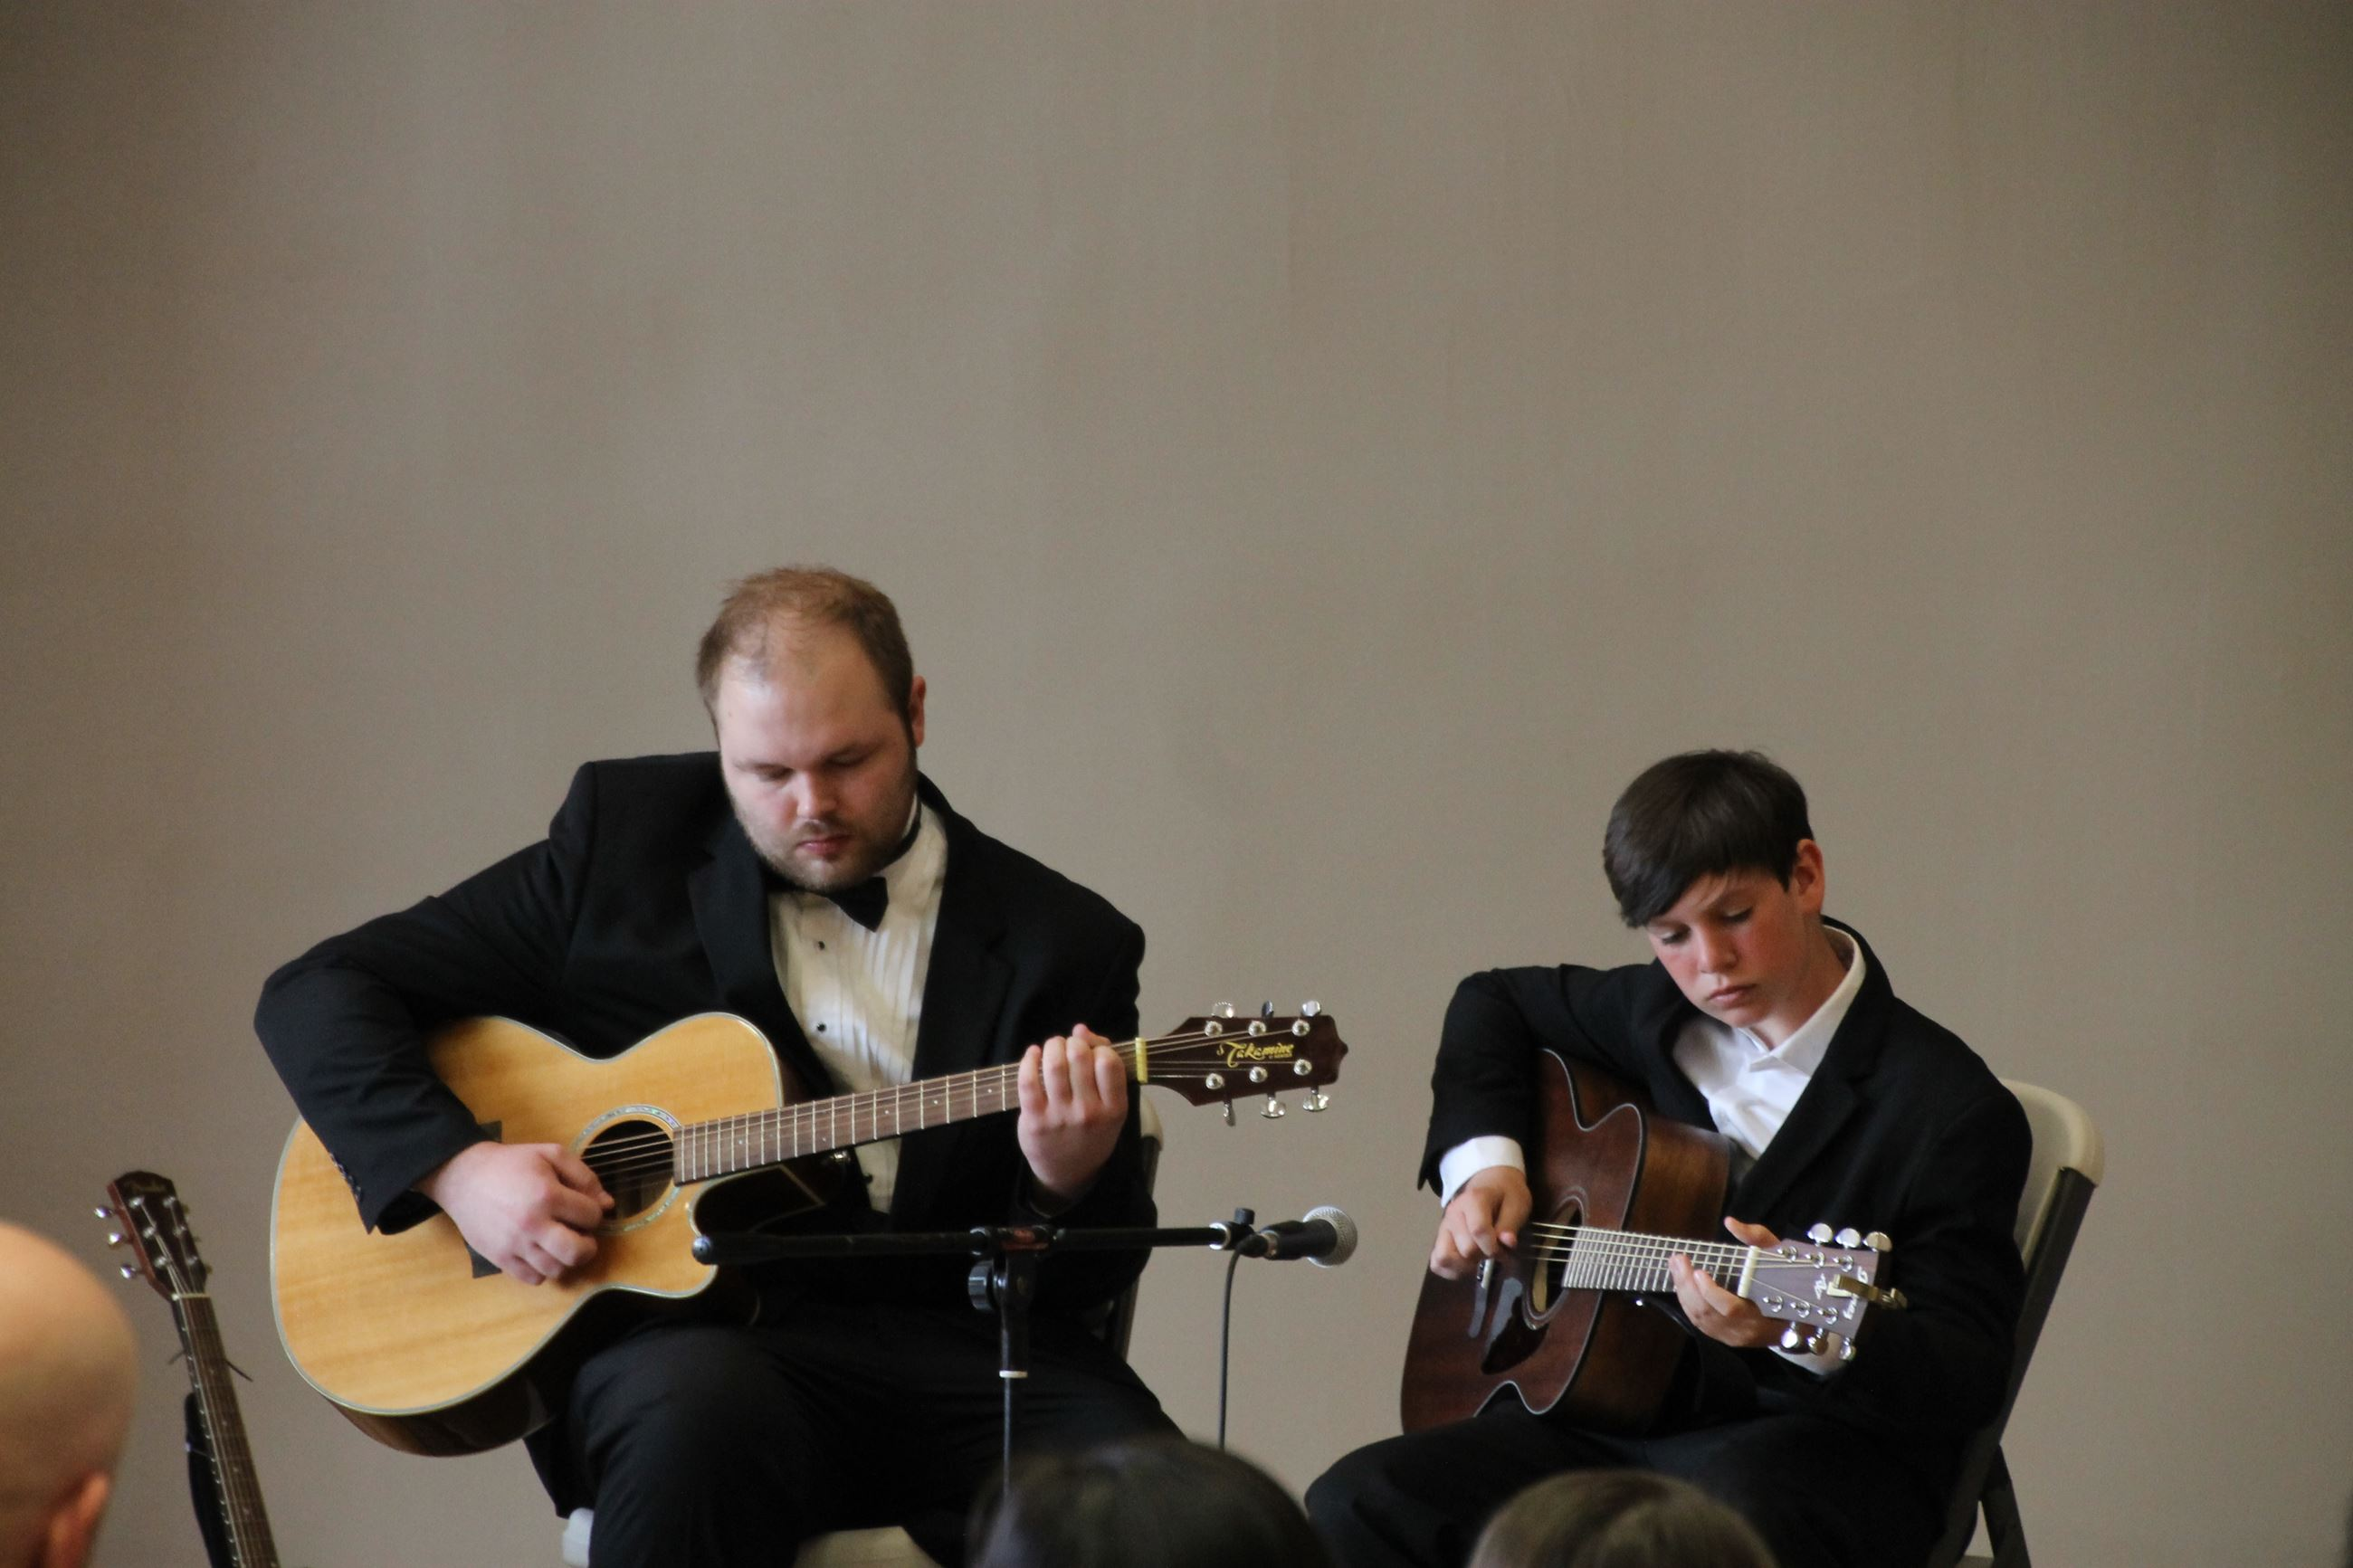 ARCC Music Program Recital Instructor and Student each playing guitar